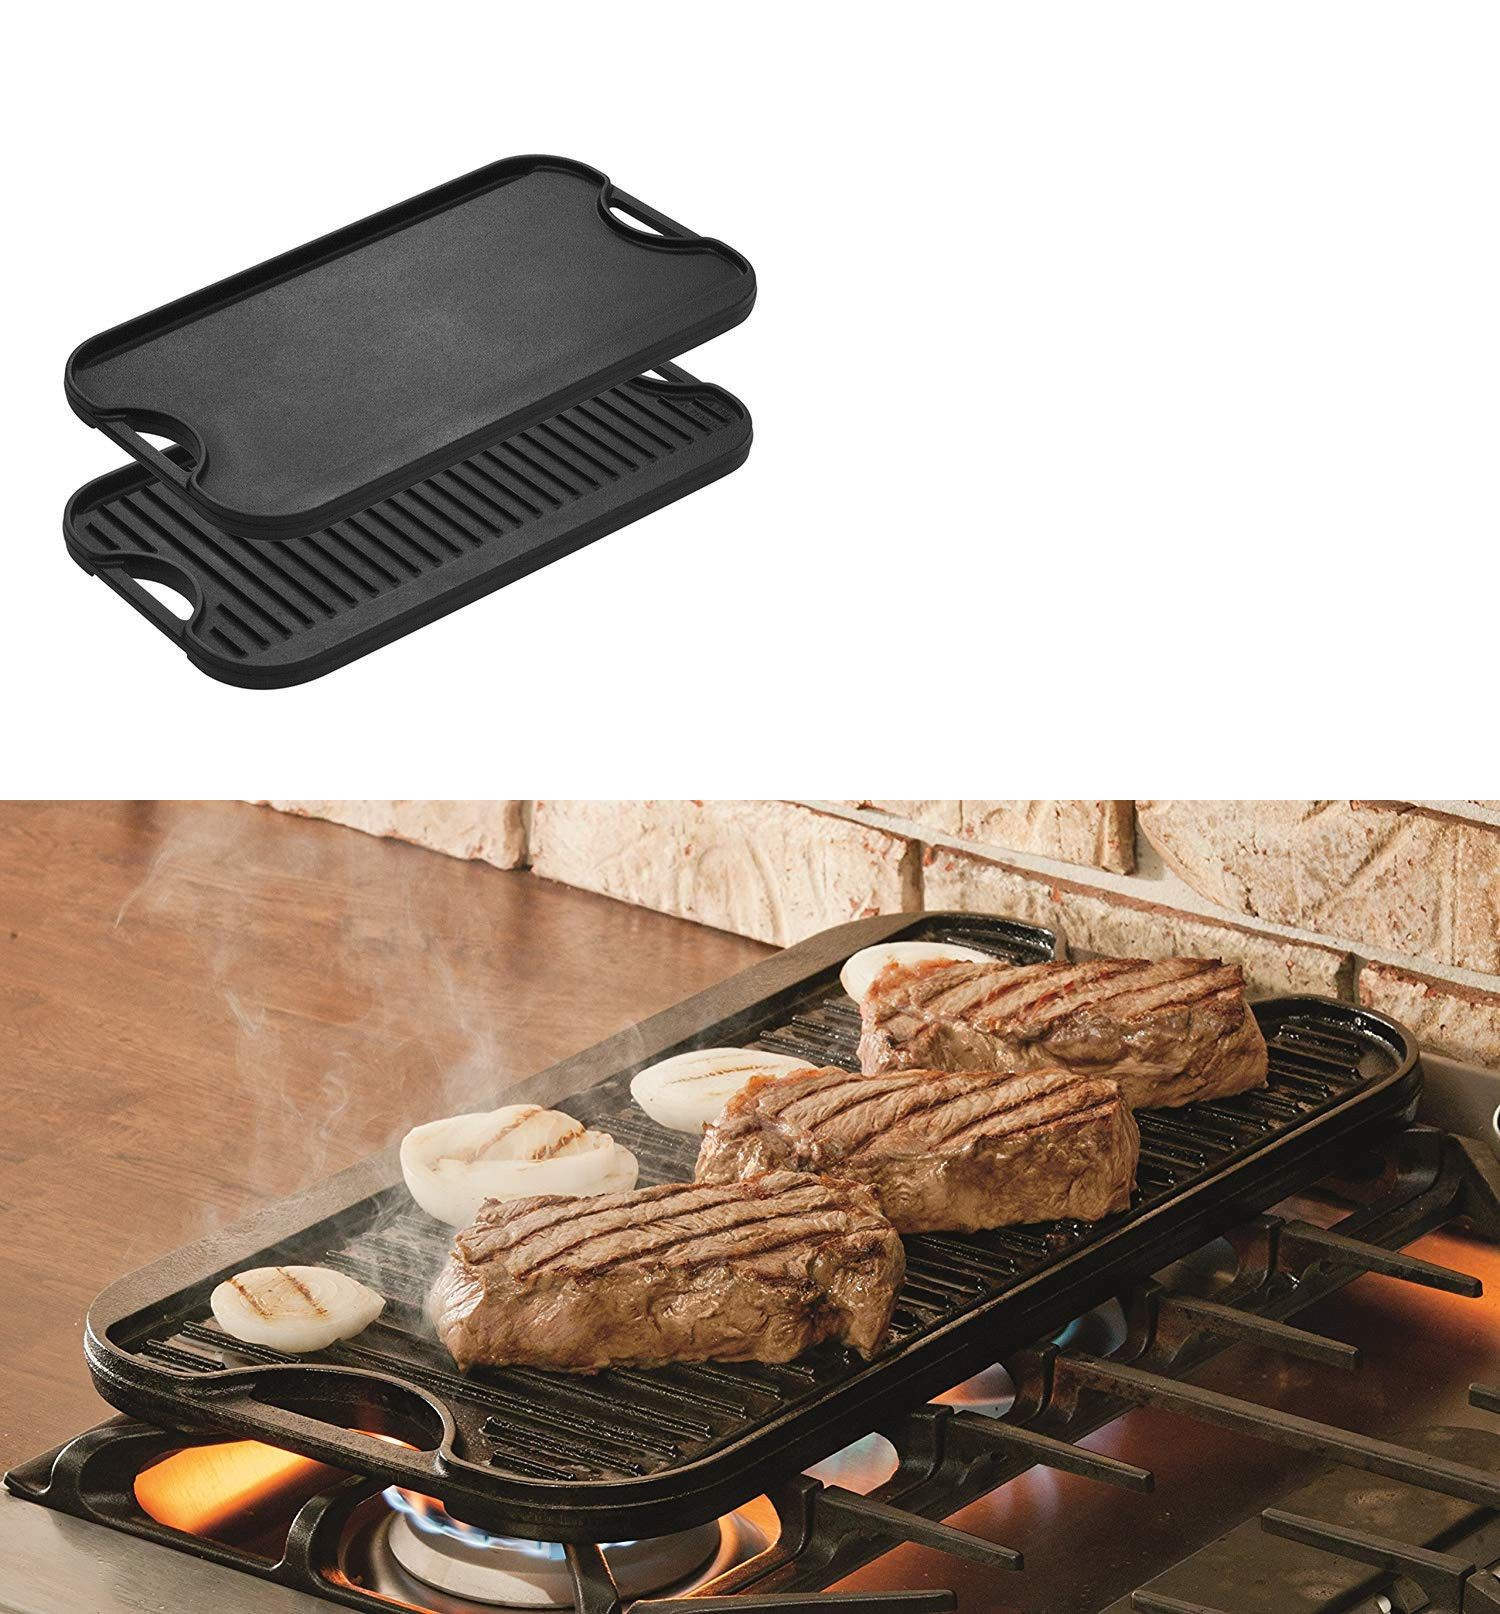 Grills And Griddles 20675 Pro Grid Cast Iron Grill Griddle Combo Reversible 20 X 10 44 Grill Gridd Griddle Grill Seasoning Cast Iron Cast Iron Grill